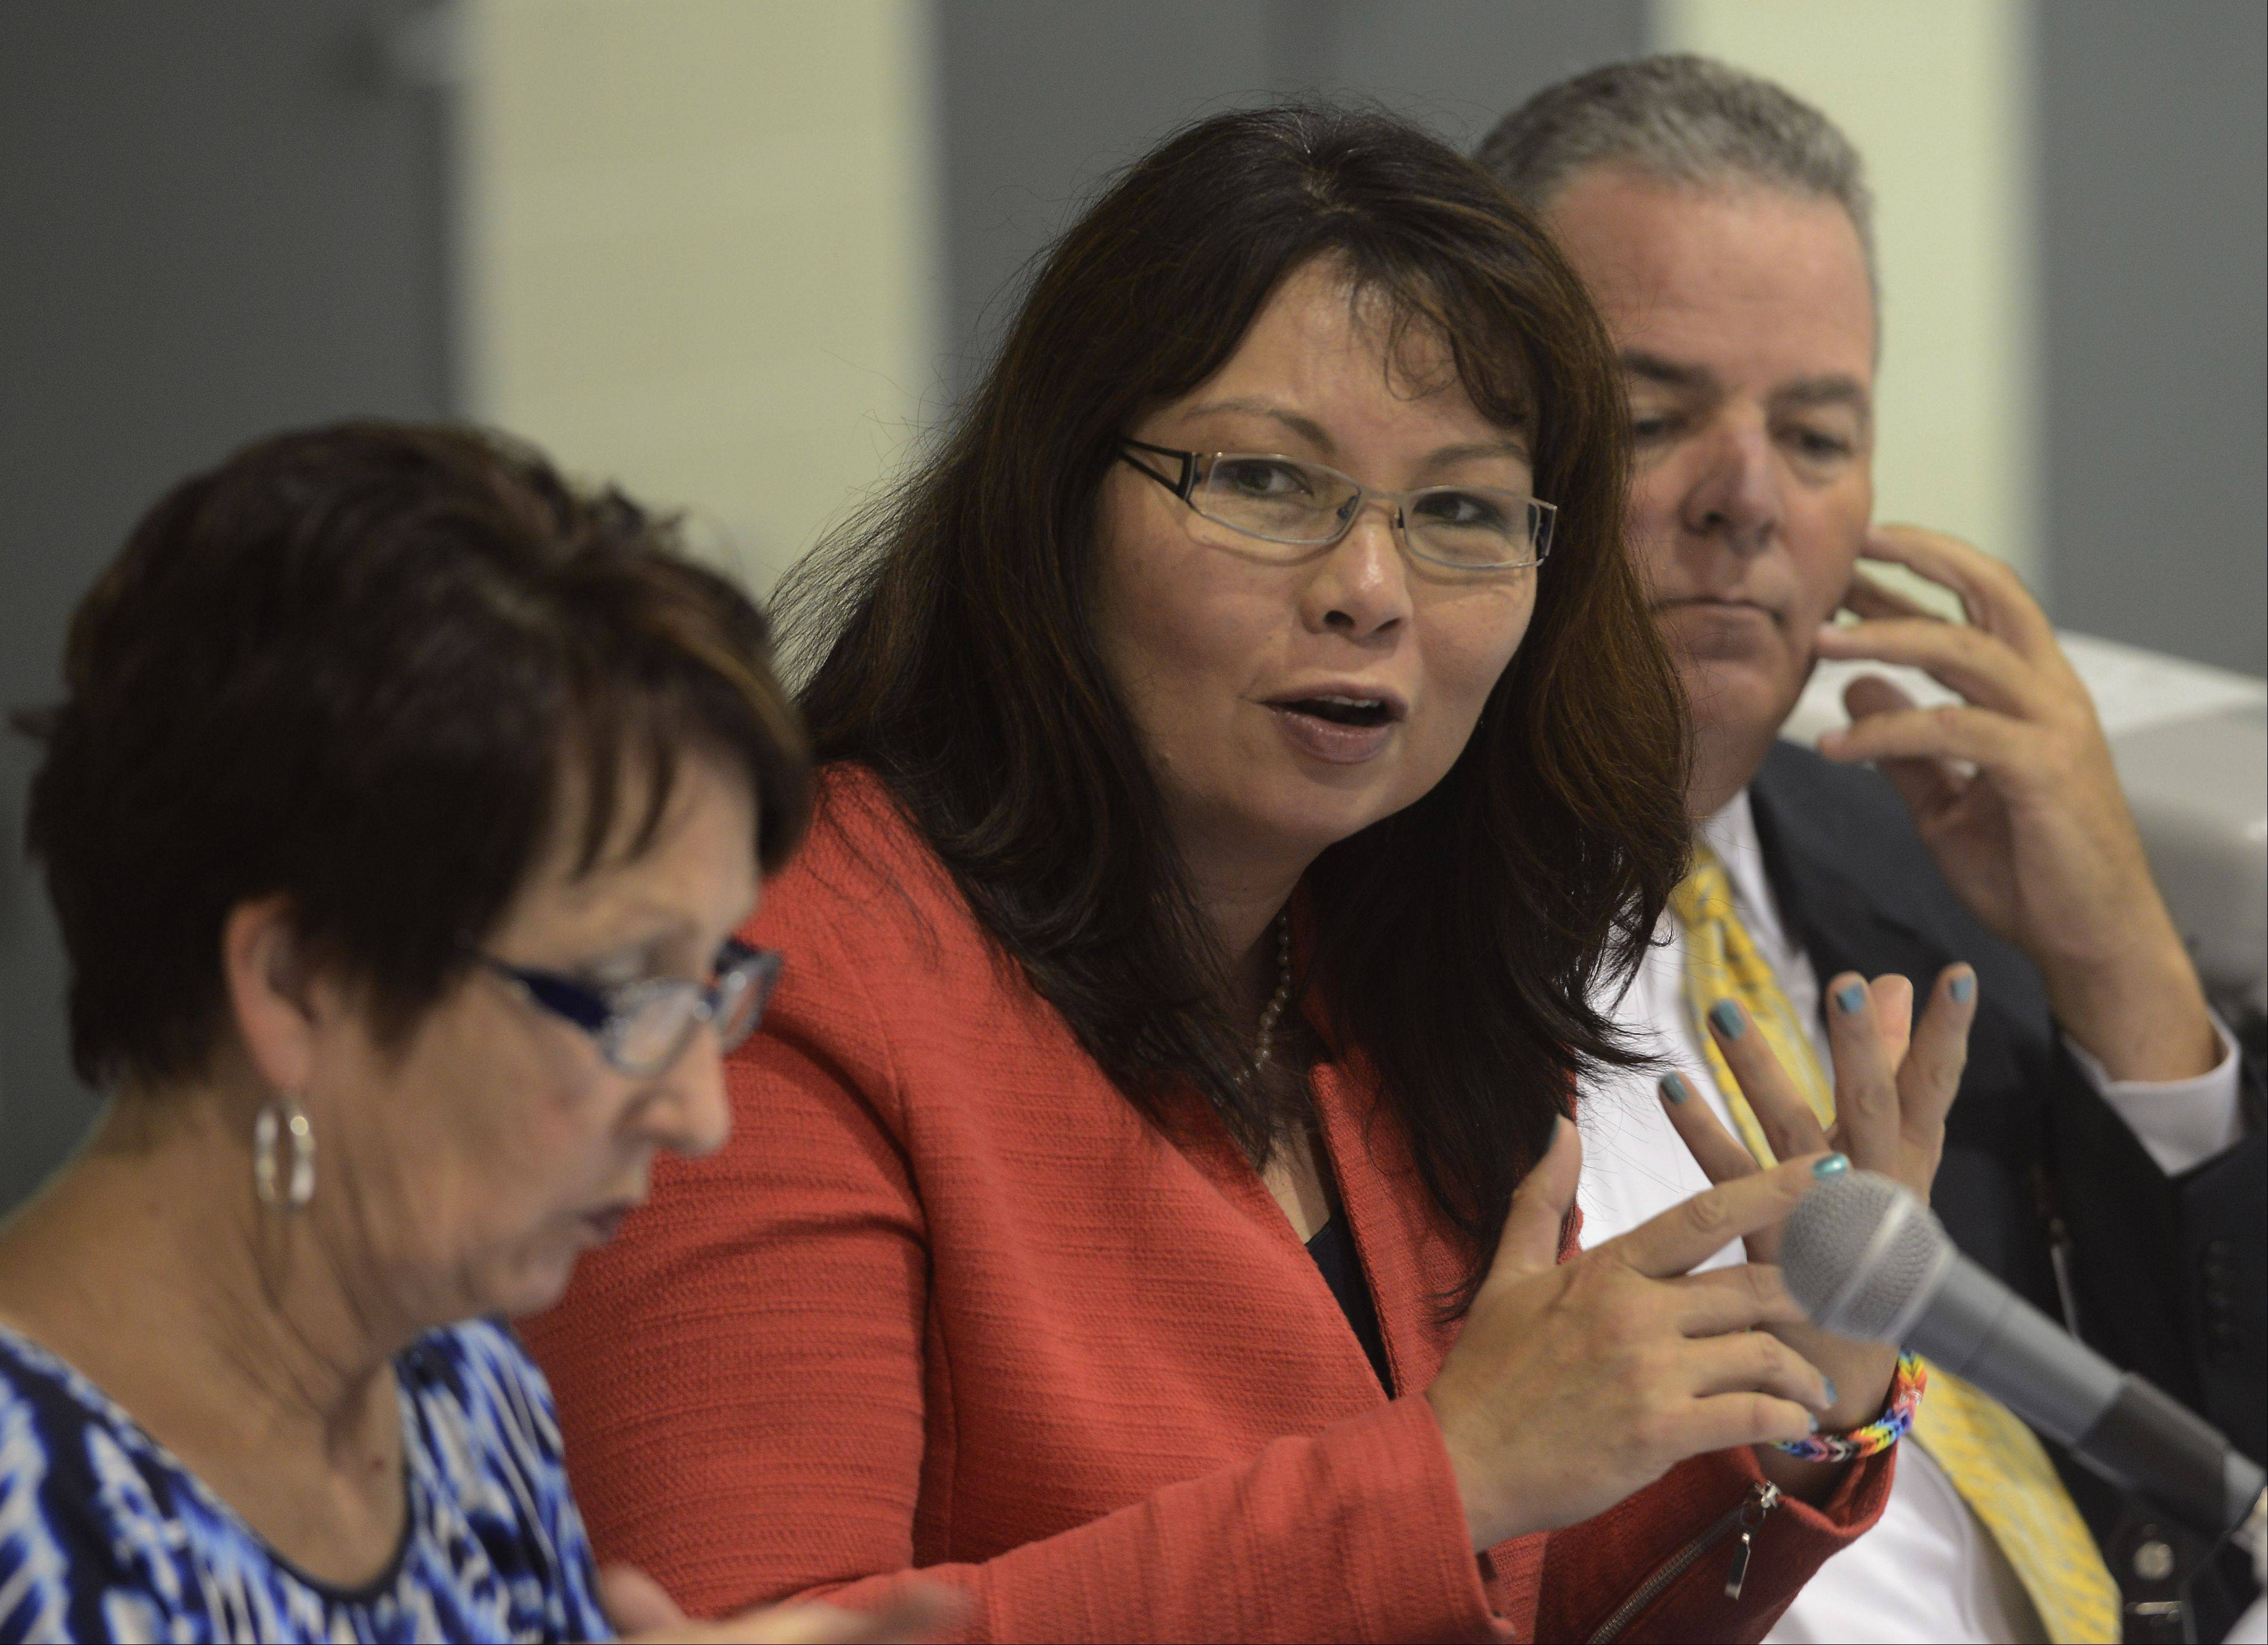 U.S. Rep. Tammy Duckworth leads a panel discussion Thursday at Carl Sandburg Junior High in Rolling Meadows on the importance of early science, technology, engineering and mathematics (STEM) education.